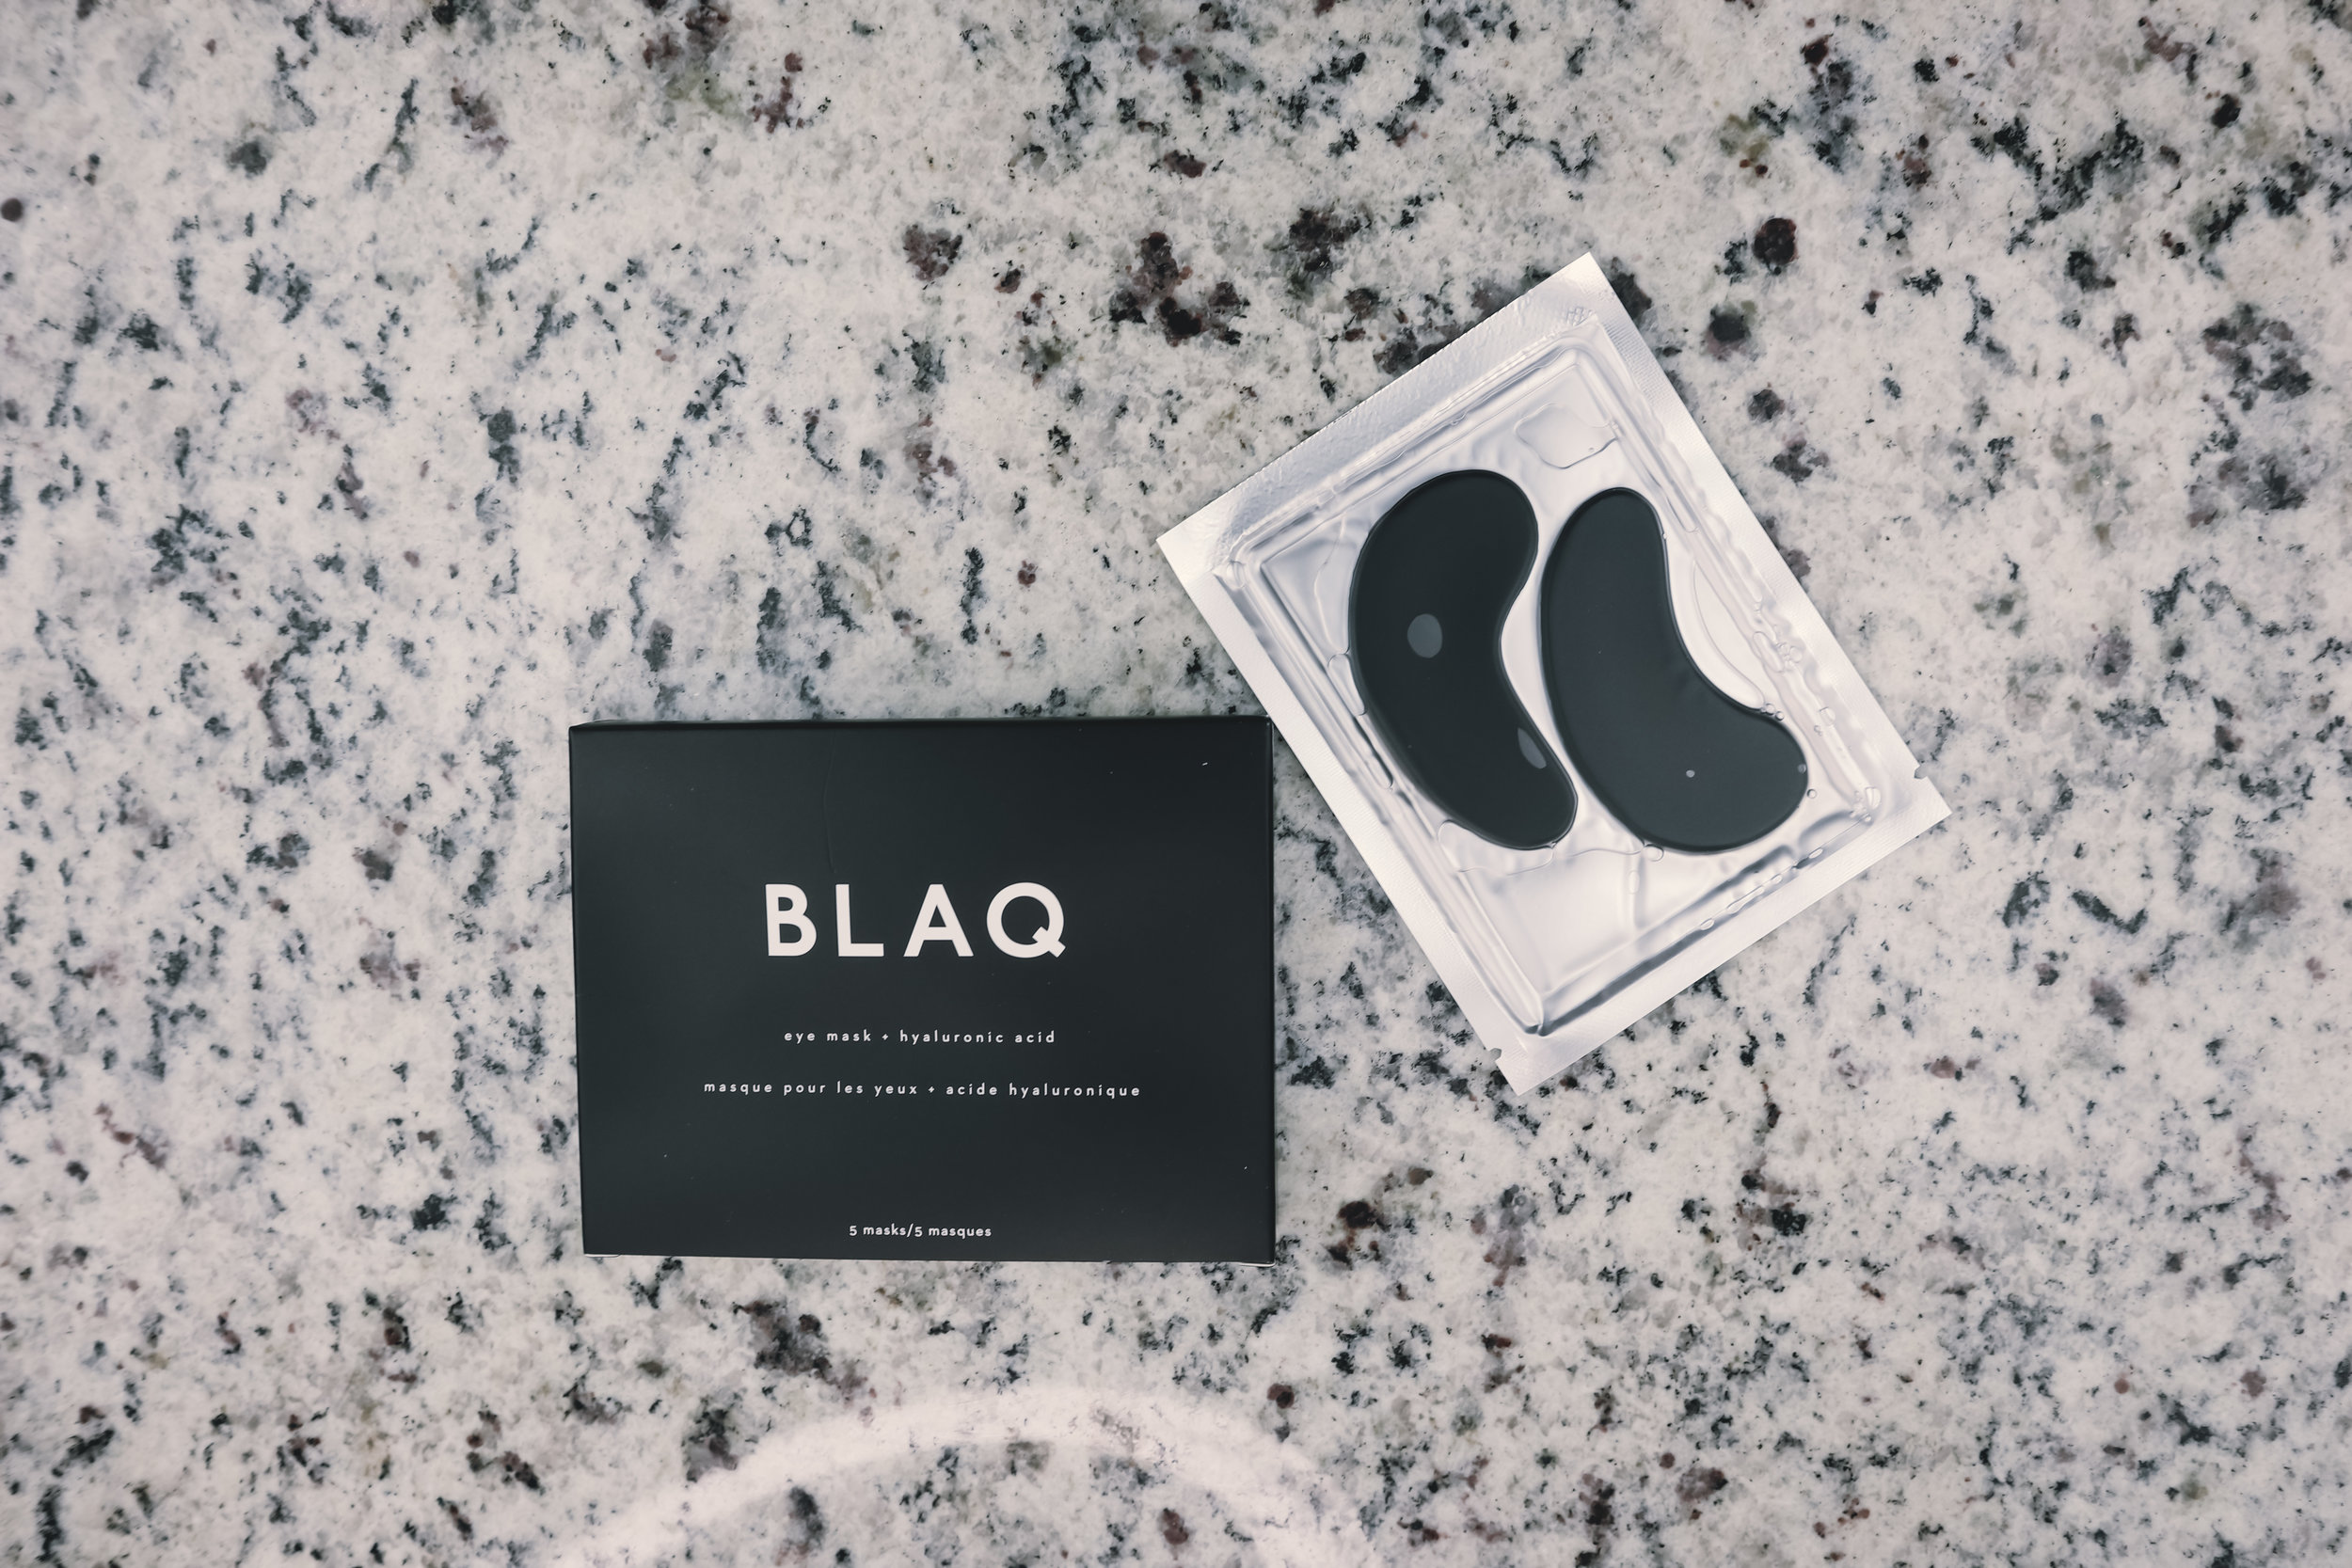 BLAQ HYDROGEL EYE MASK WITH HYALURONIC ACID ($29) - Pamper those tired eyes with this amazing mask!